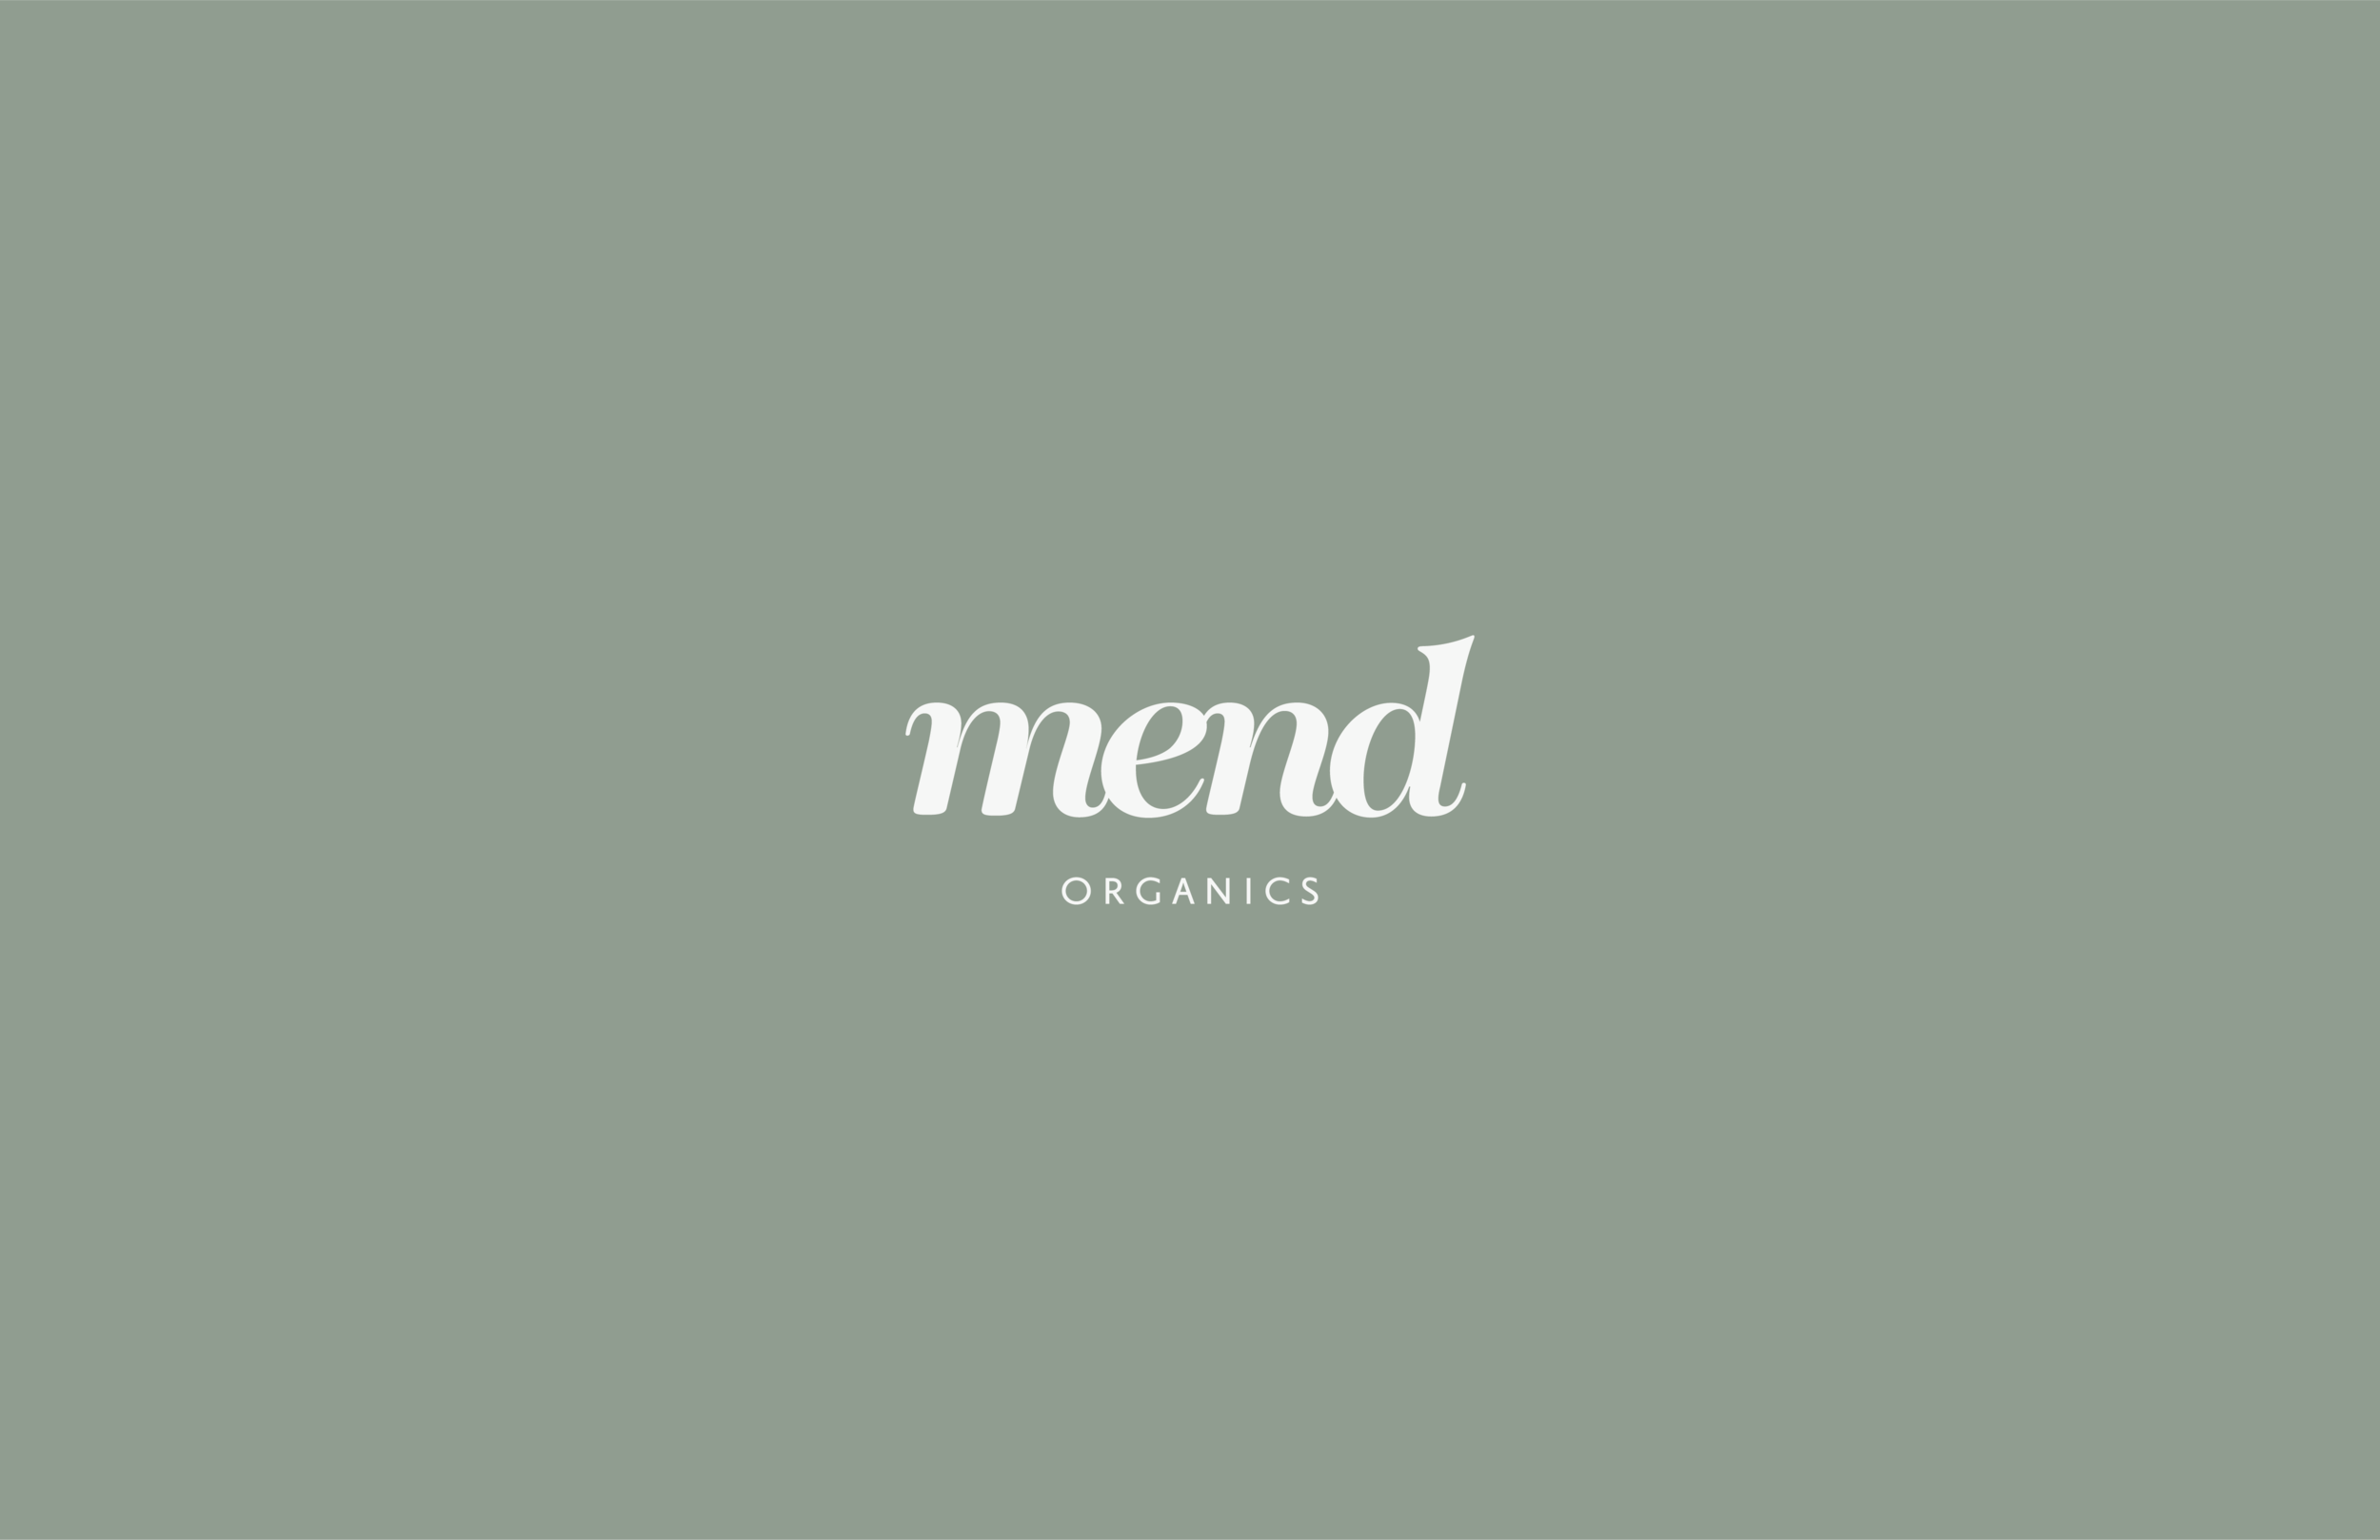 Mend-03.png